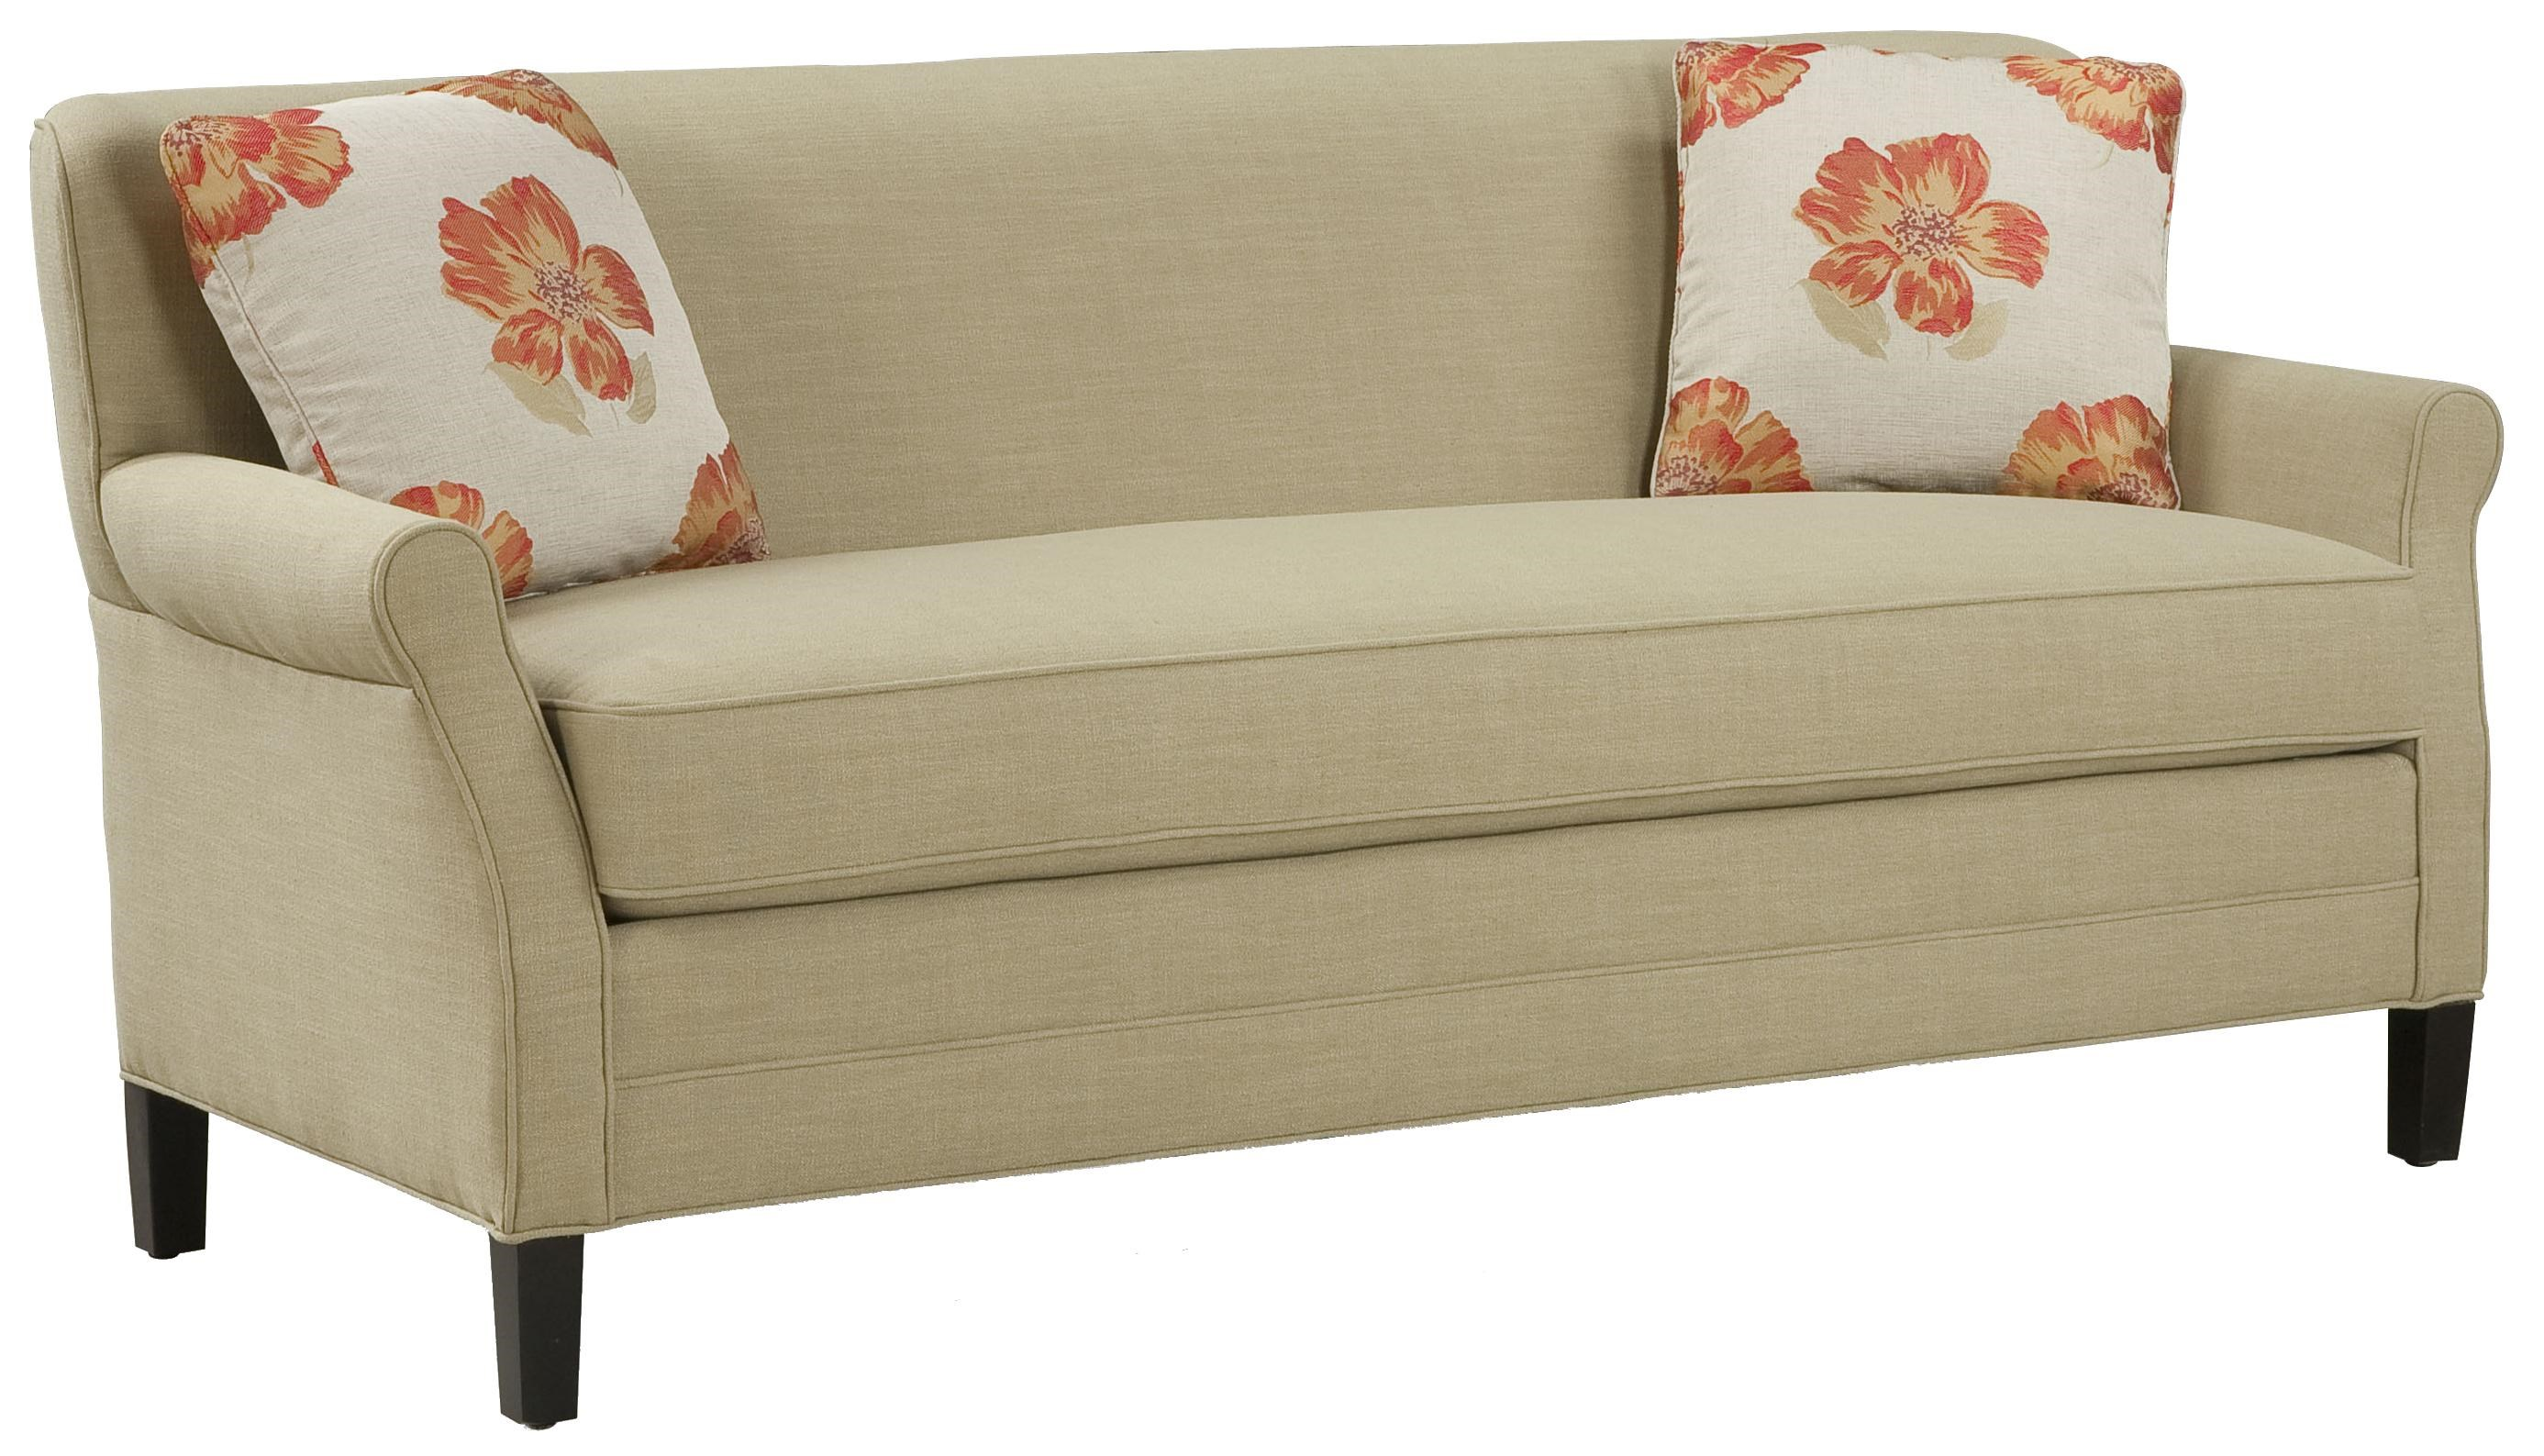 Fairfield Sofa Accents Simple and Elegant Un-Cluttered ...